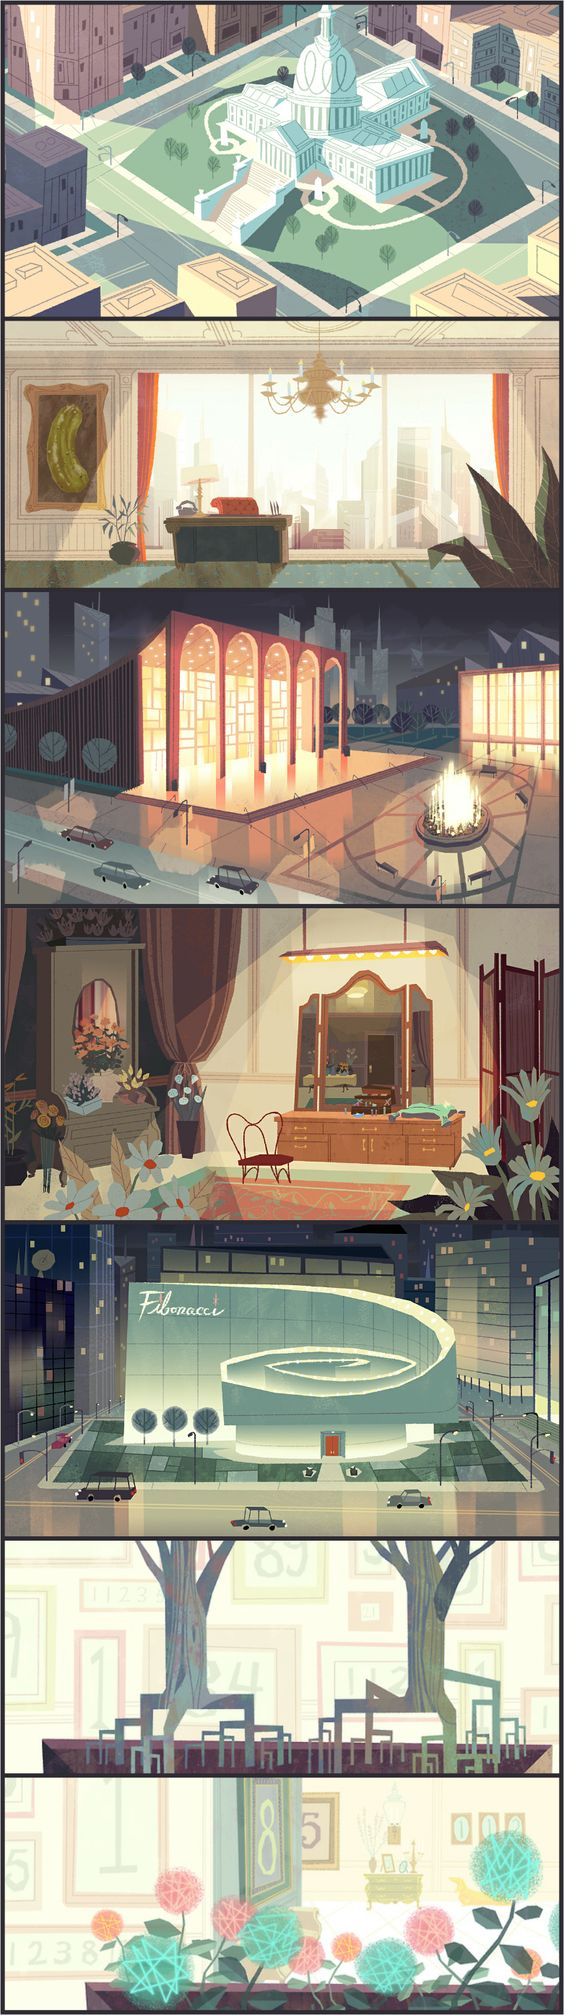 Some location backgrounds for the Powerpuff Girls Danced Pantsed Special on Cartoon Network!